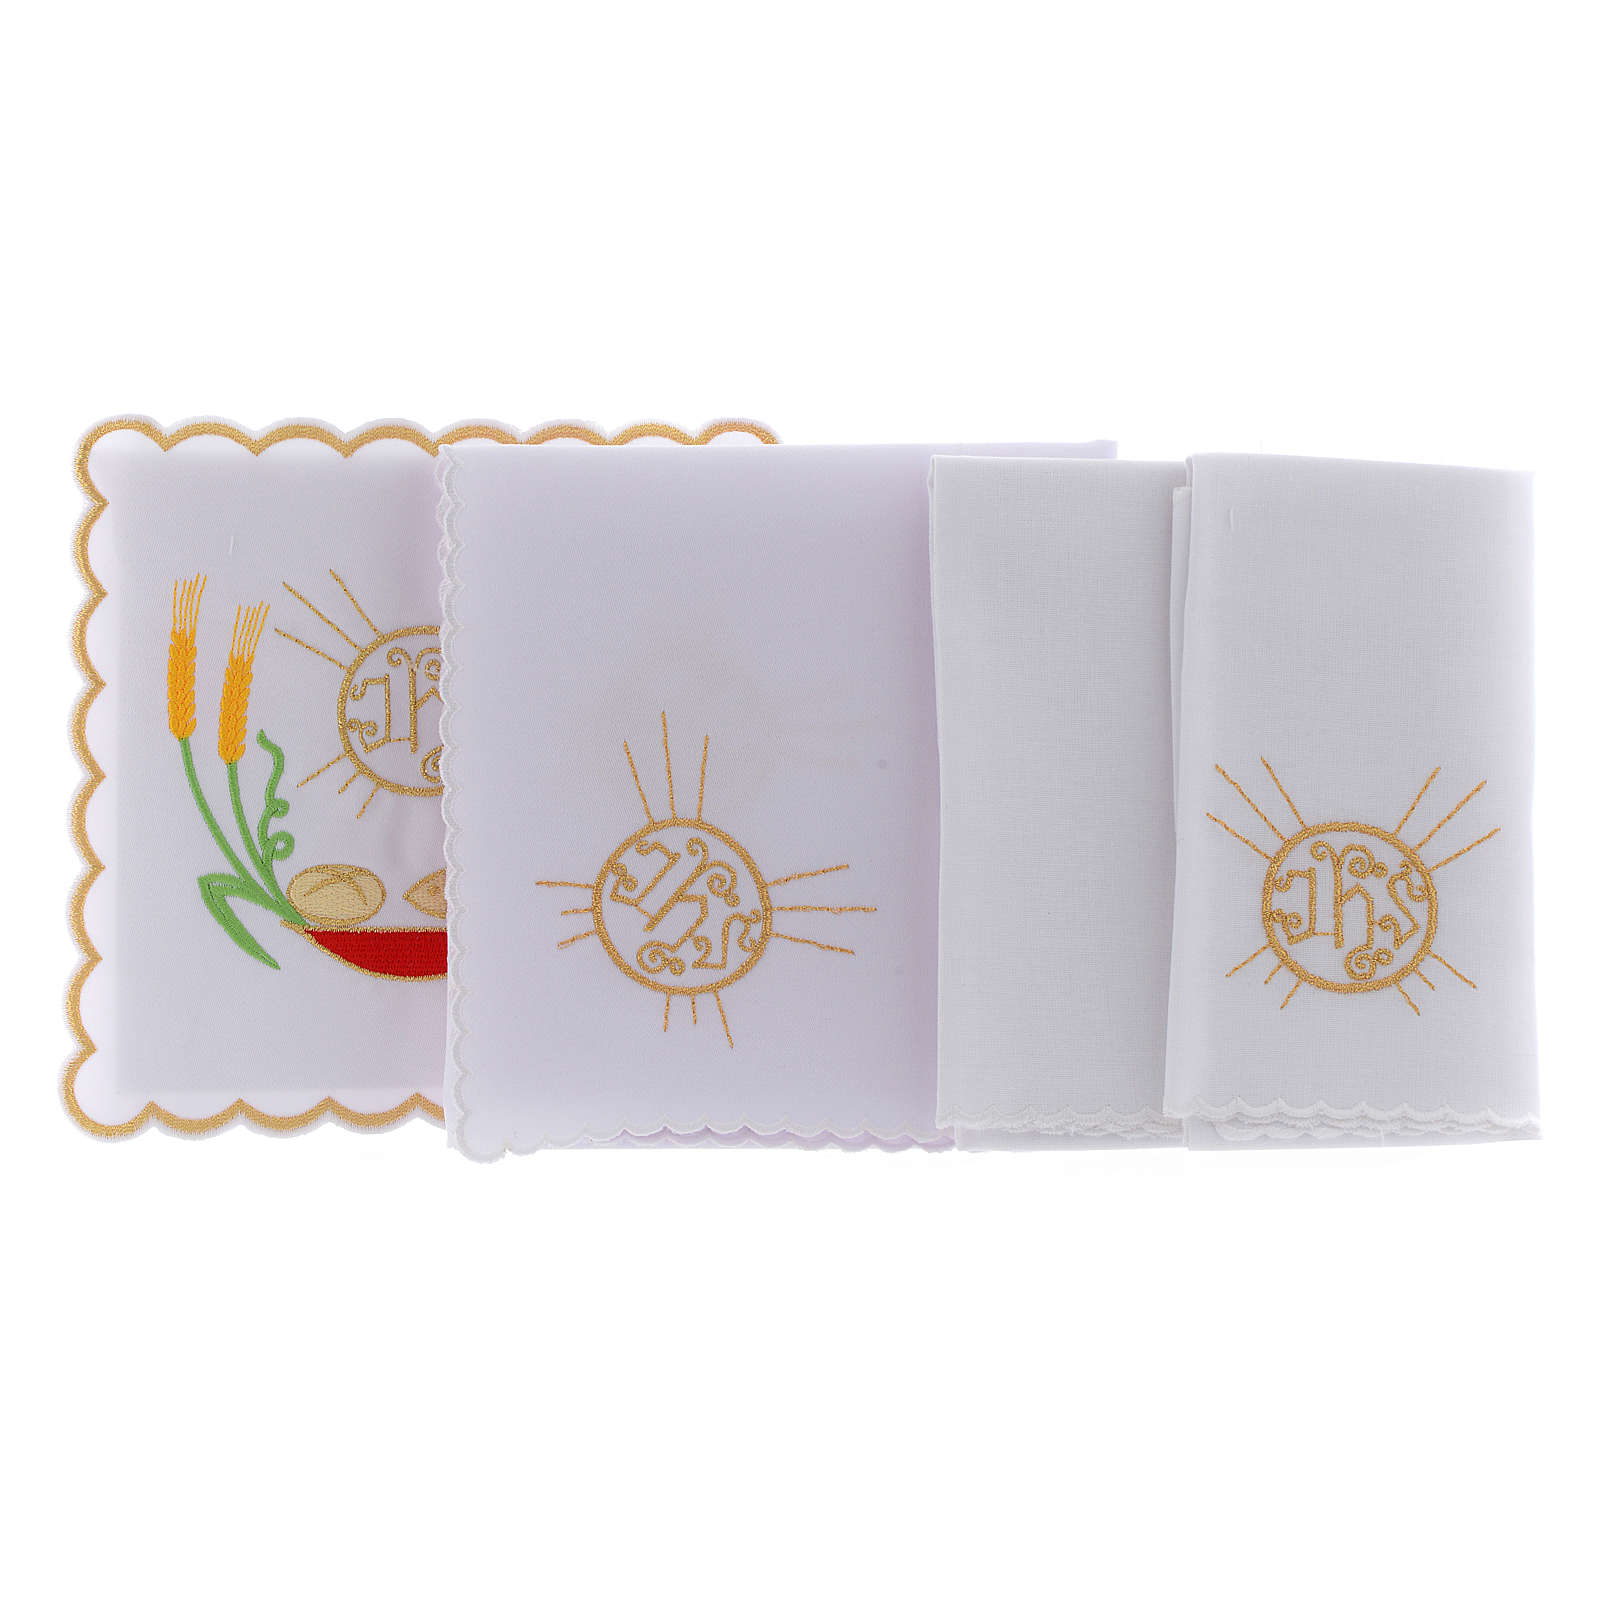 Altar linen loaves & fishes spikes symbol JHS, cotton 4